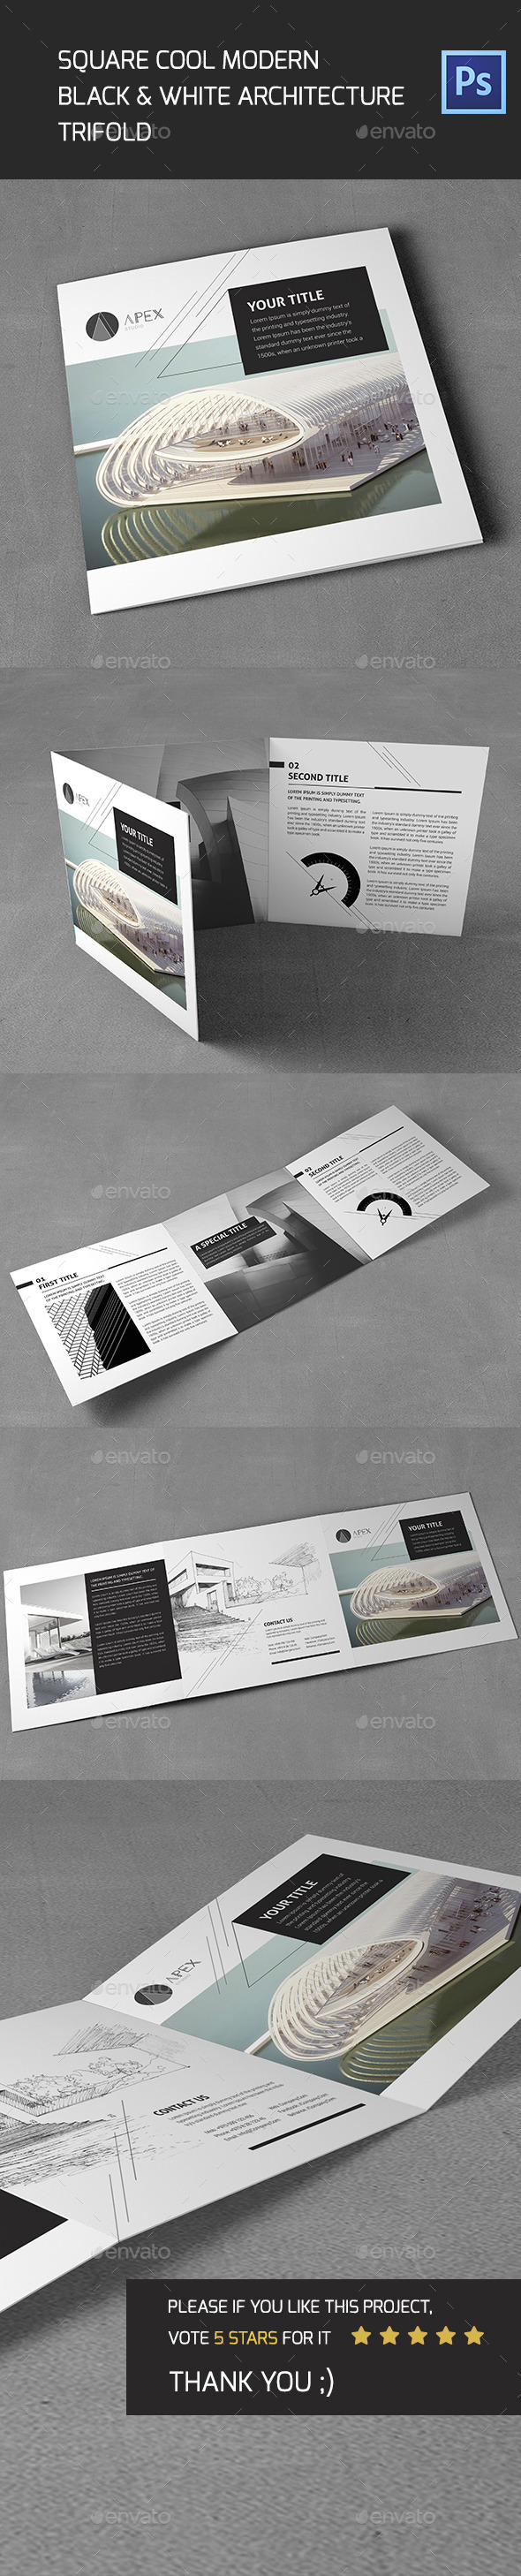 GraphicRiver Square Cool Modern Architecture Trifold 11788009